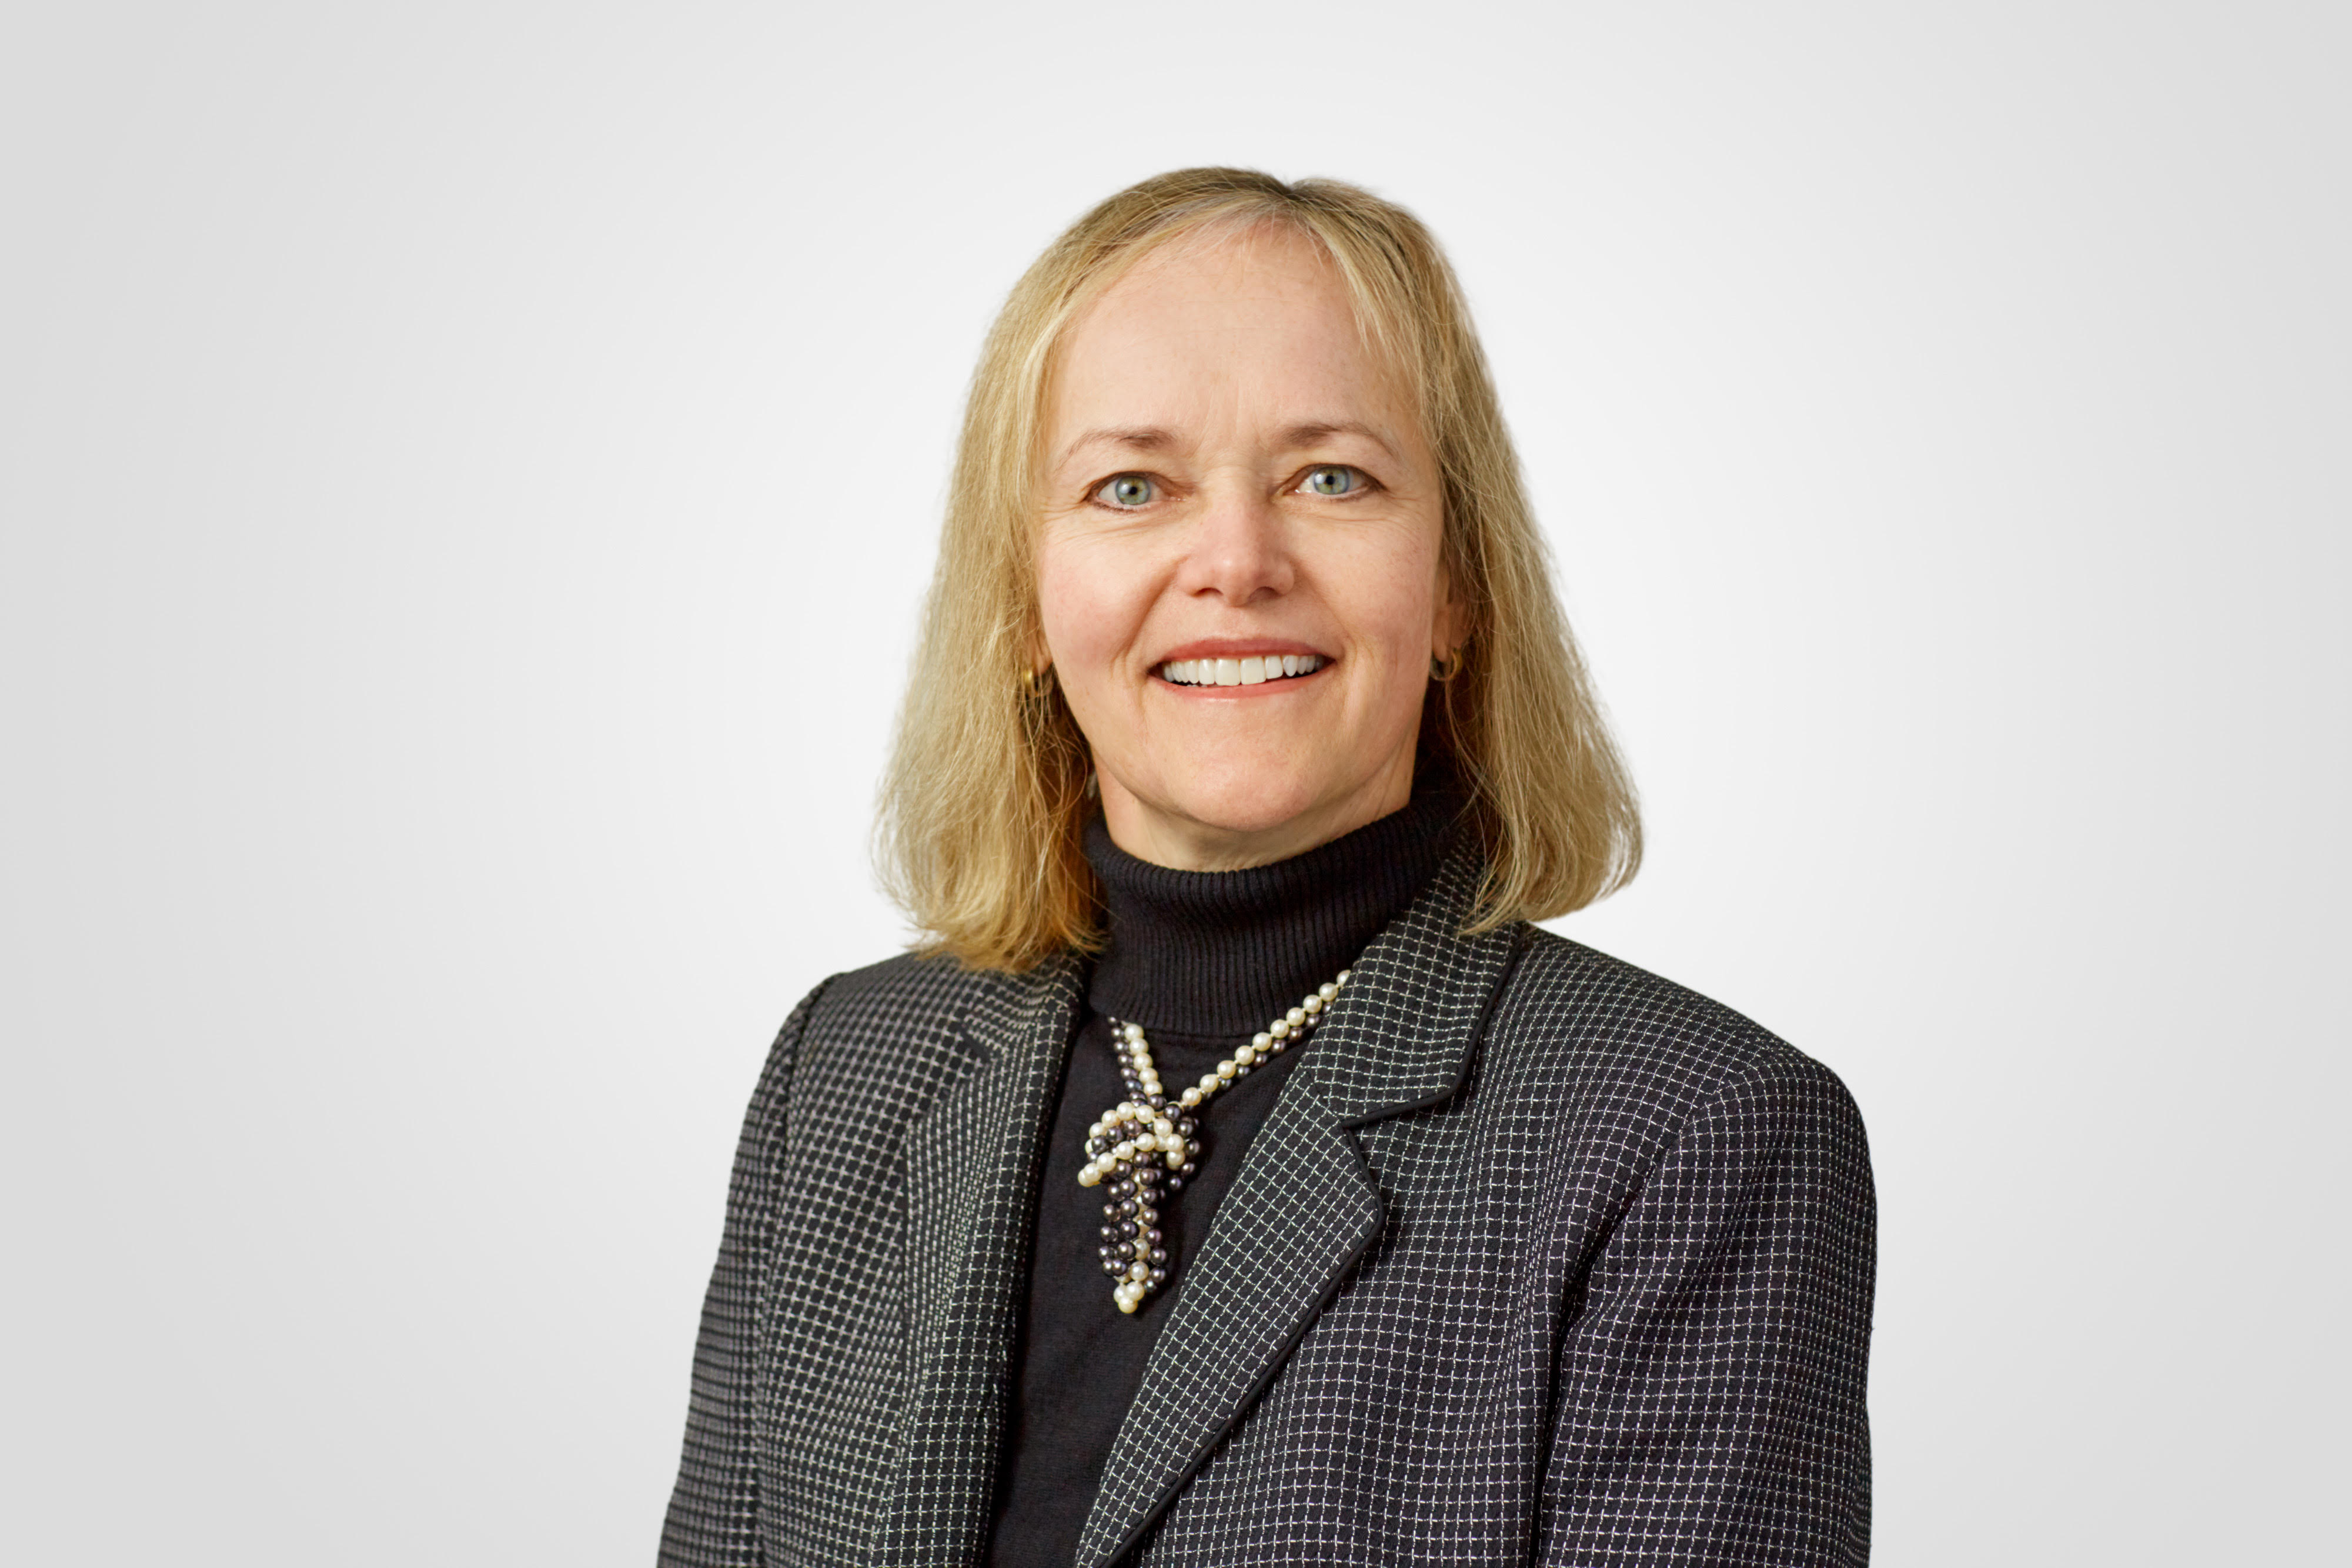 Ingrid M. Werner has an MBA and an Ekon. Lic. from Stockholm School of  Economics, a PhD in Economics from the University of Rochester (1990), ...